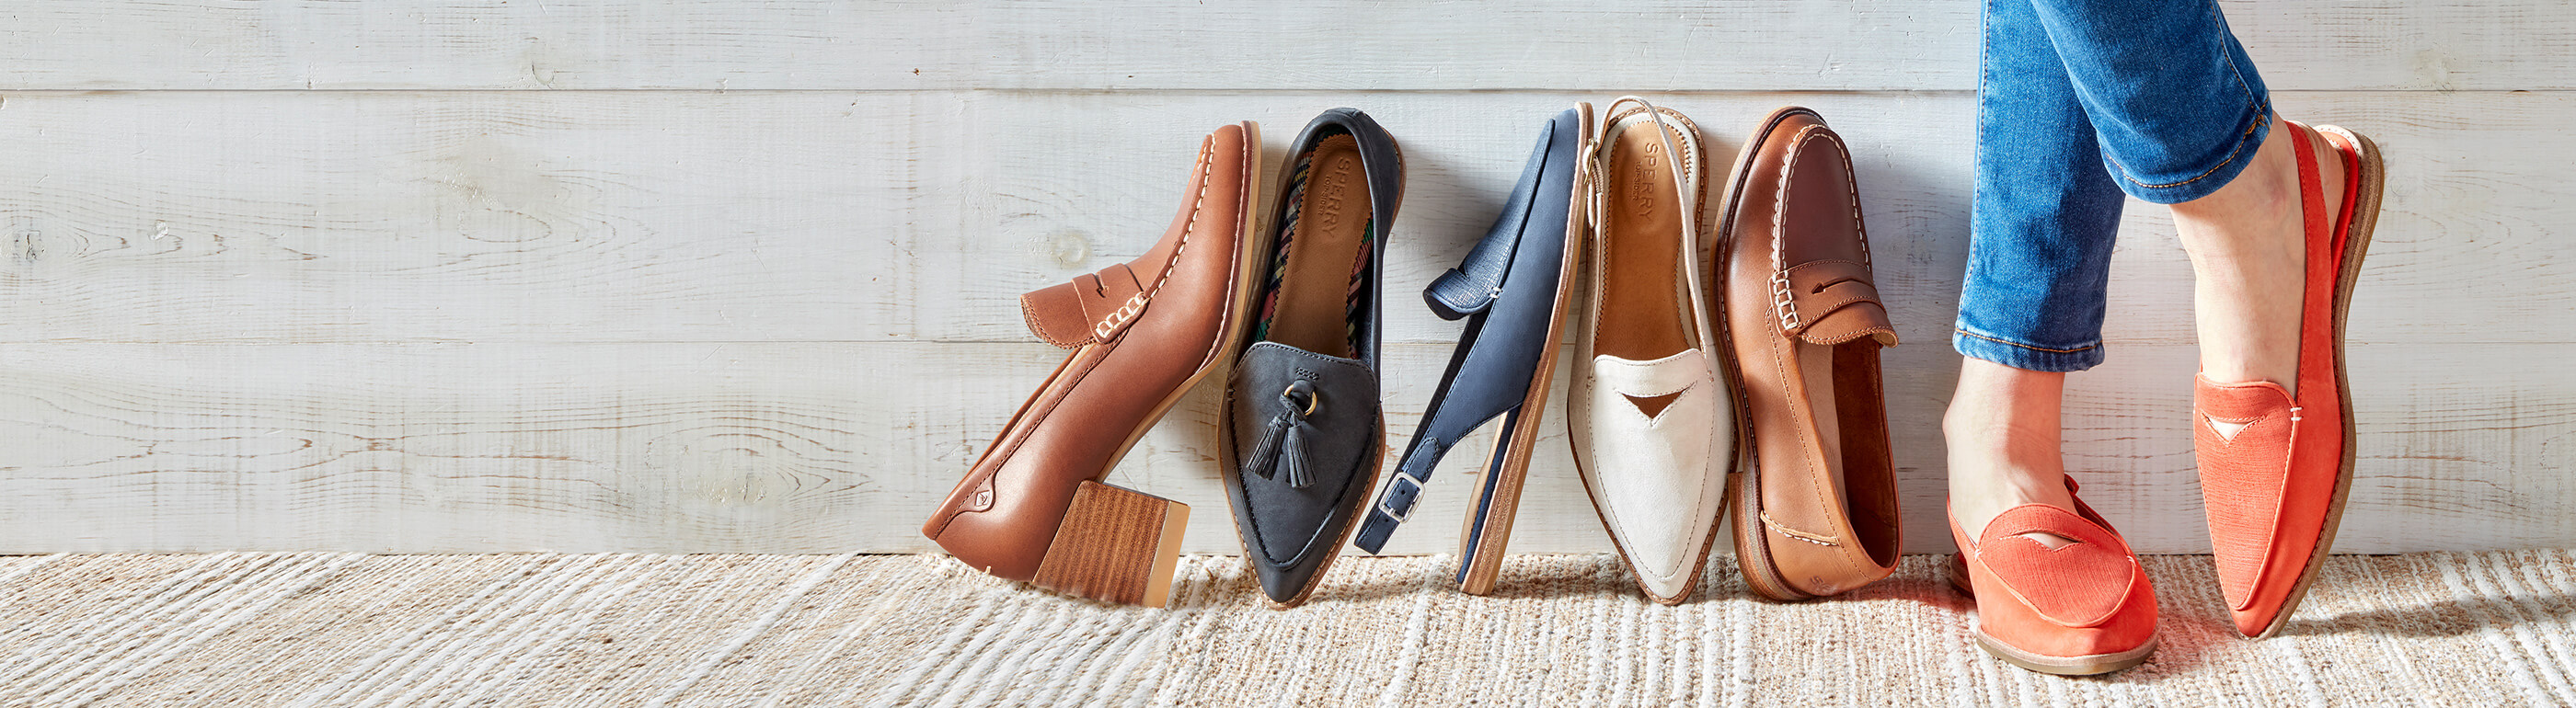 Casual feet stand beside loafers in a variety of styles and colors leaning against a wall.